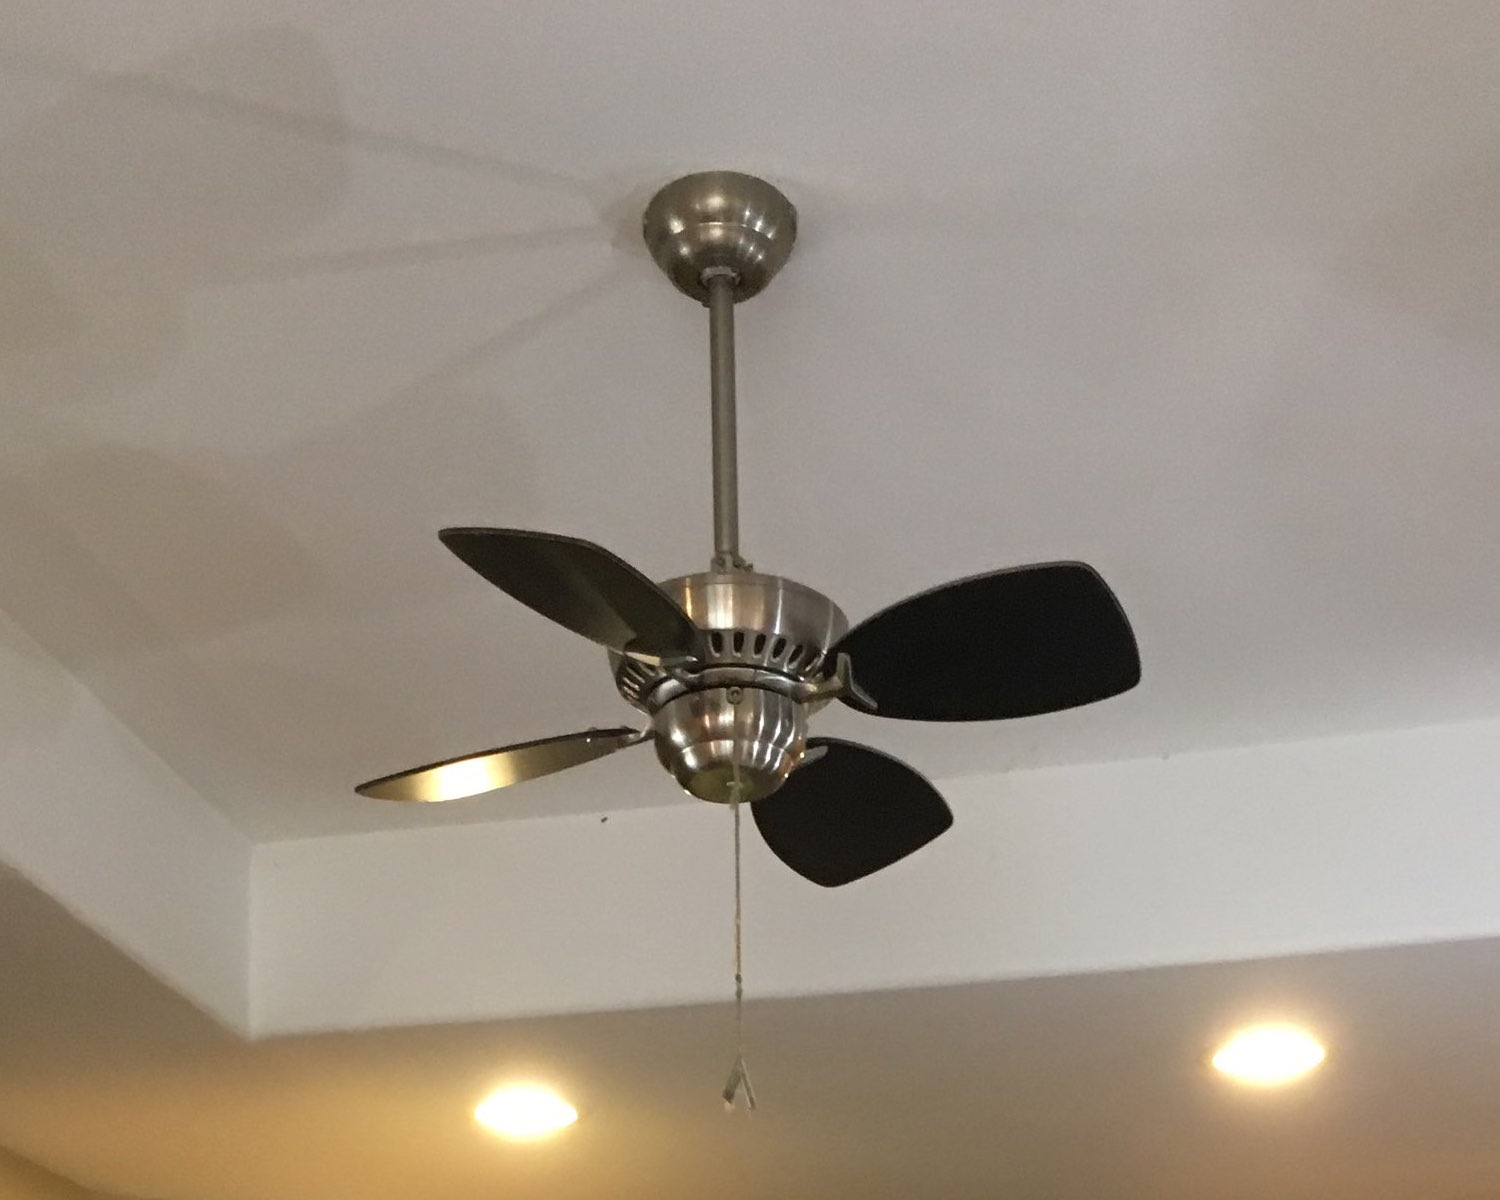 7 Things You May Not Know About Ceiling Fans Energy Vanguard